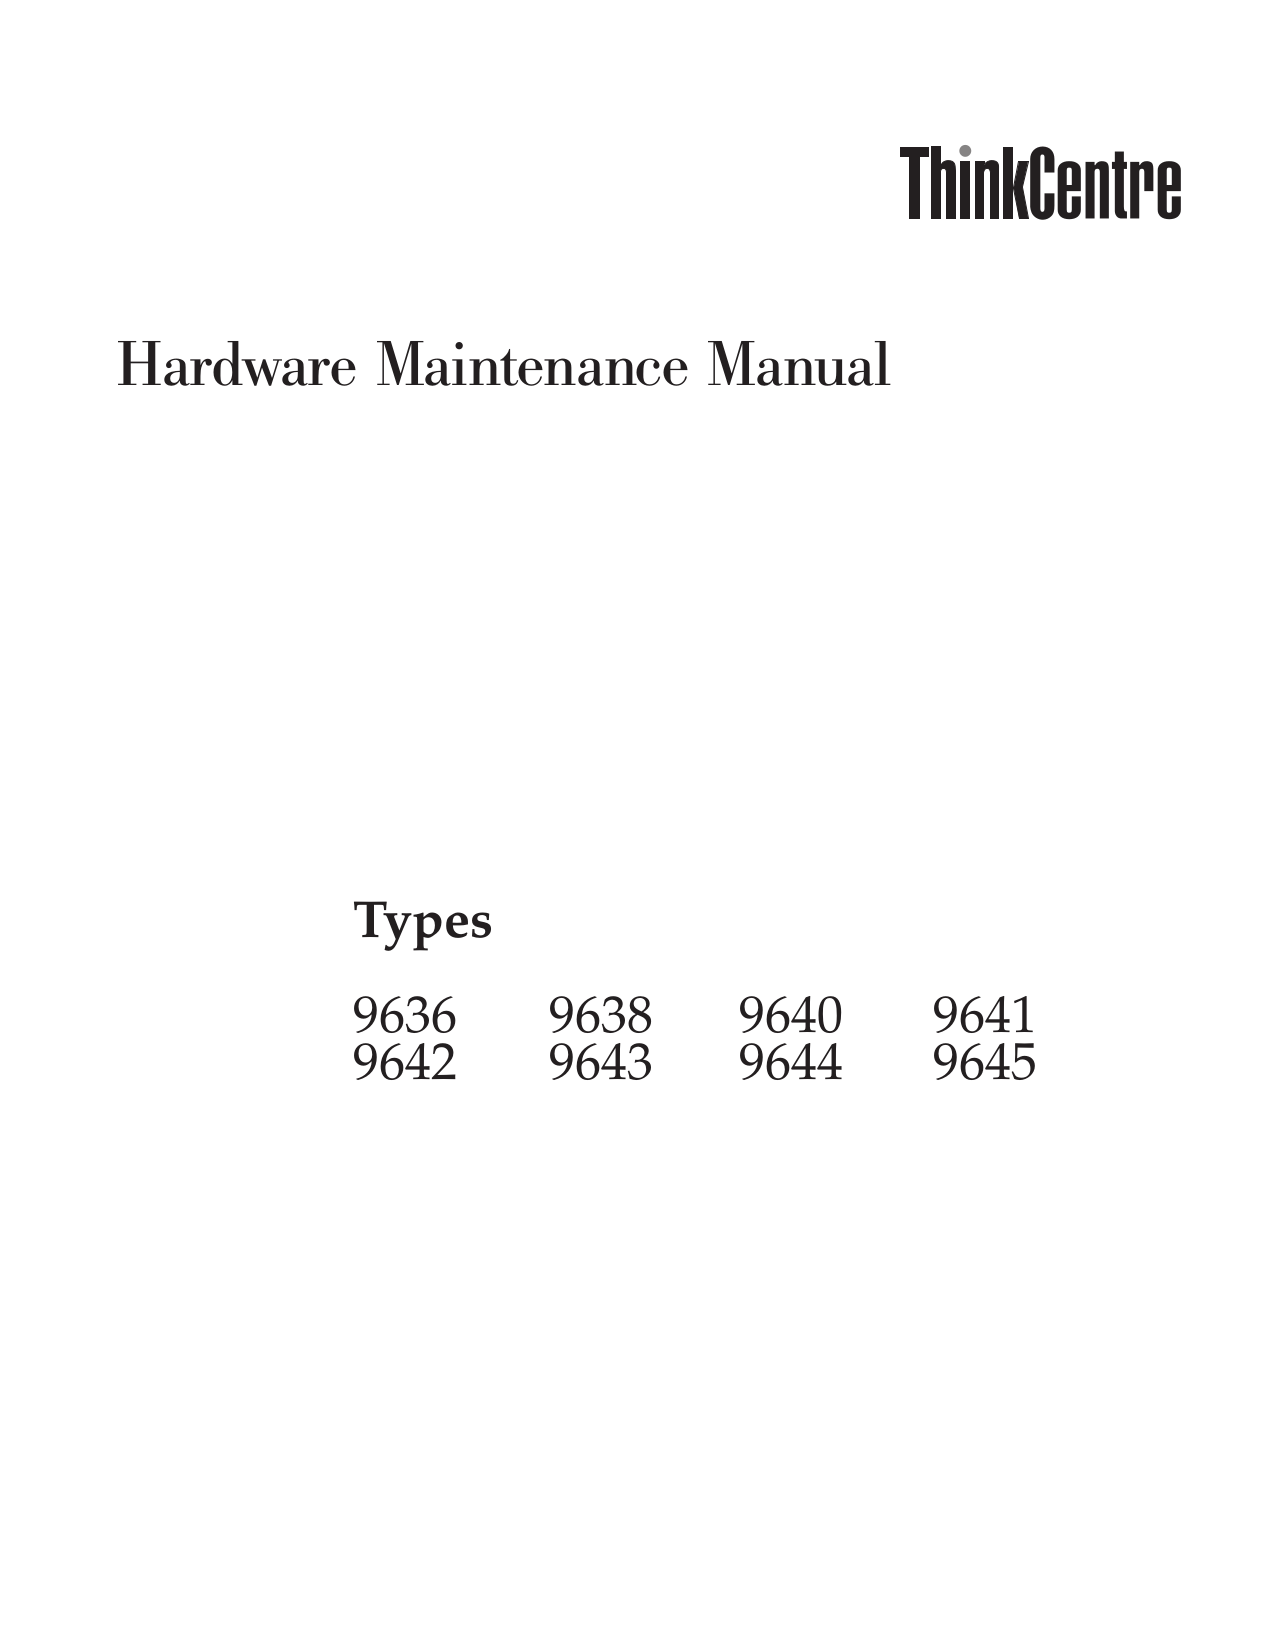 pdf for Lenovo Desktop ThinkCentre M55e 9300 manual